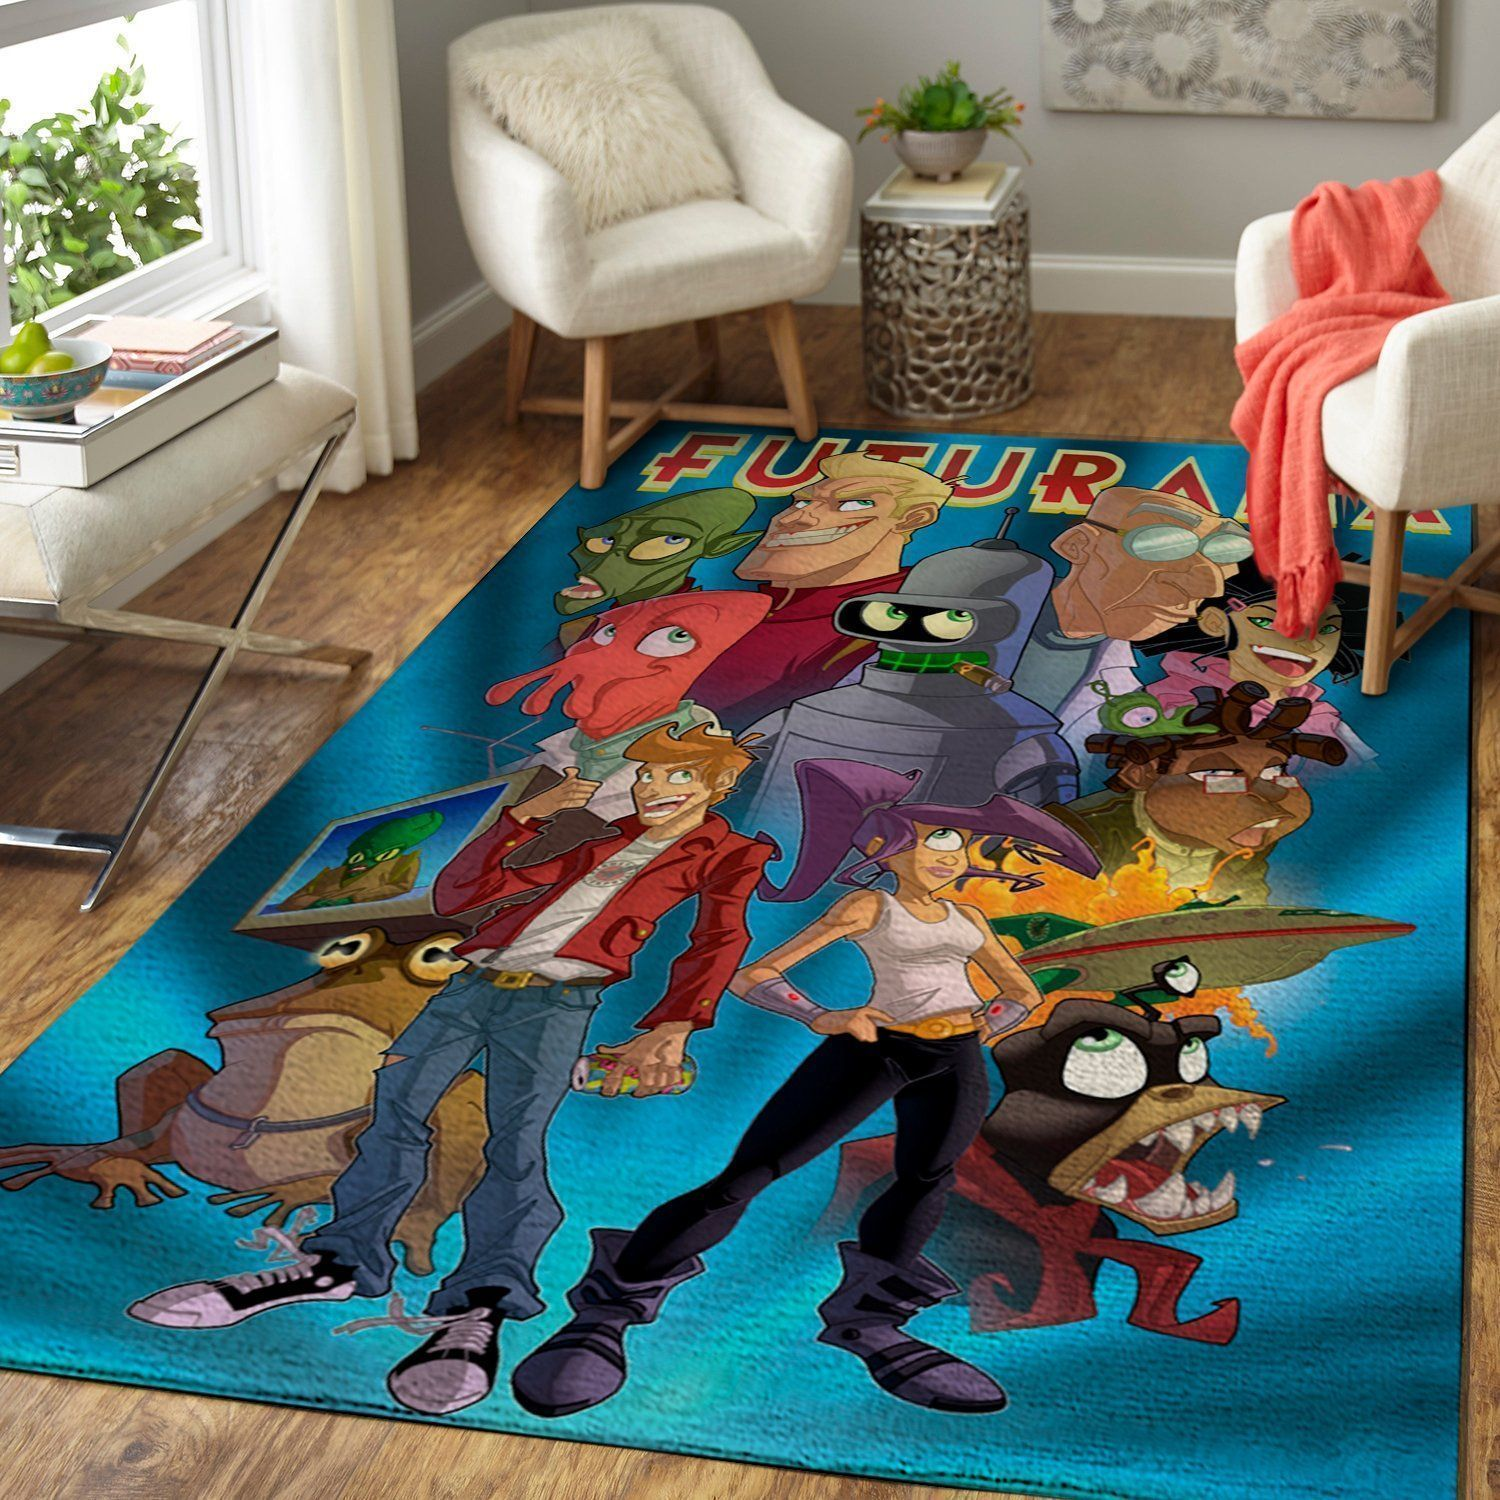 Futurama Area Rugs, Movie Living Room Carpet, Custom Floor Decor